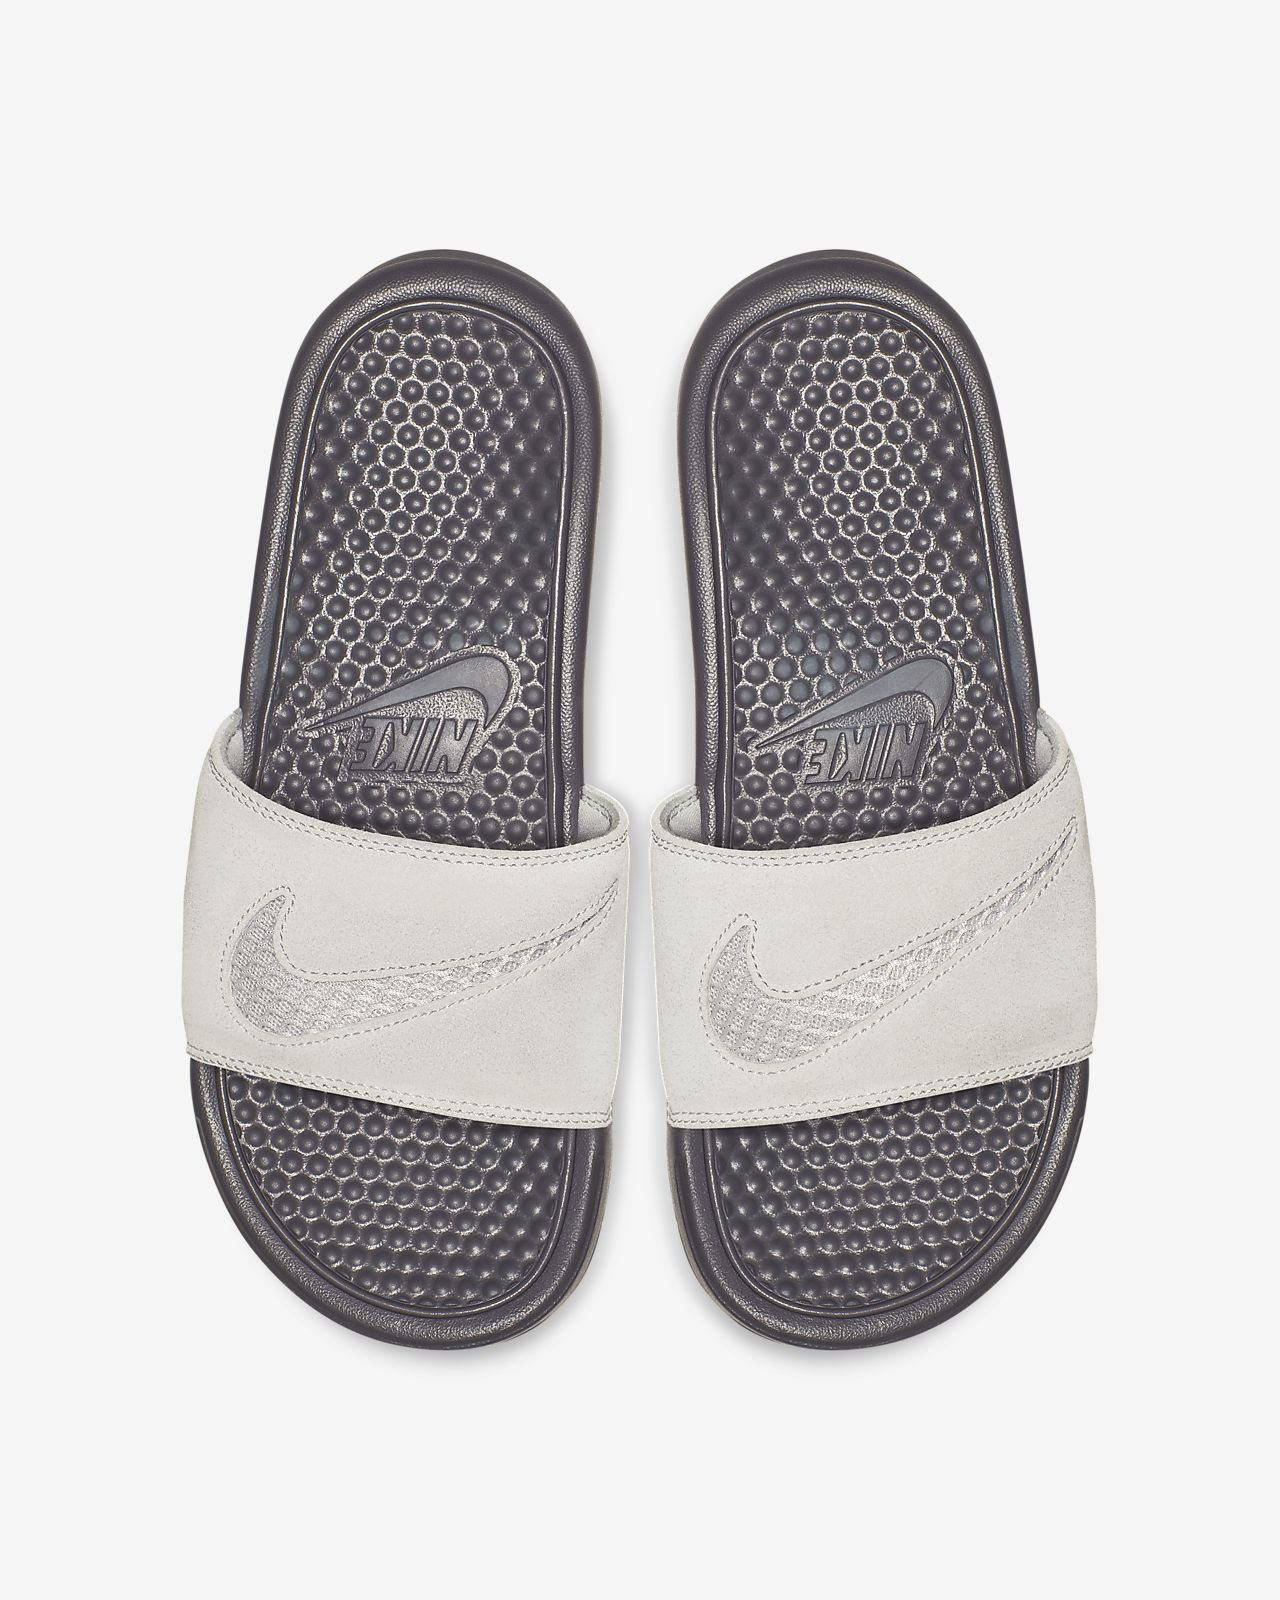 detailed pictures 86185 d1f6c ... Nike Benassi JDI Leather SE Women s Sandal